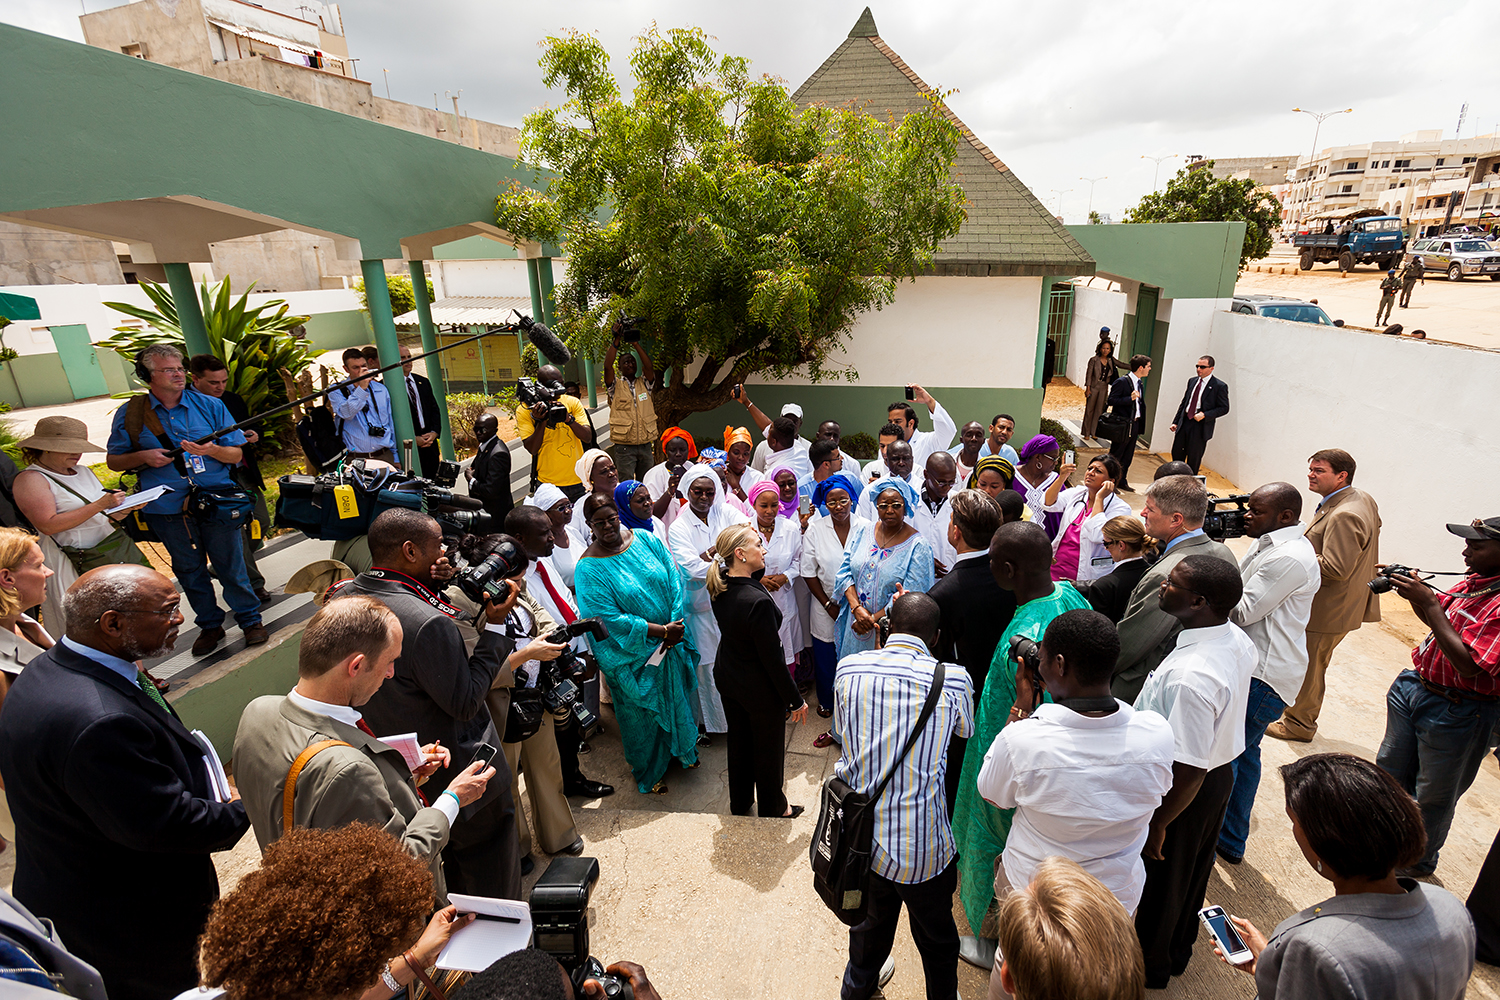 US Secretary of State Hillary Clinton visits a women's health clinic in Dakar, Senegal on Wednesday, Aug. 1, 2012.